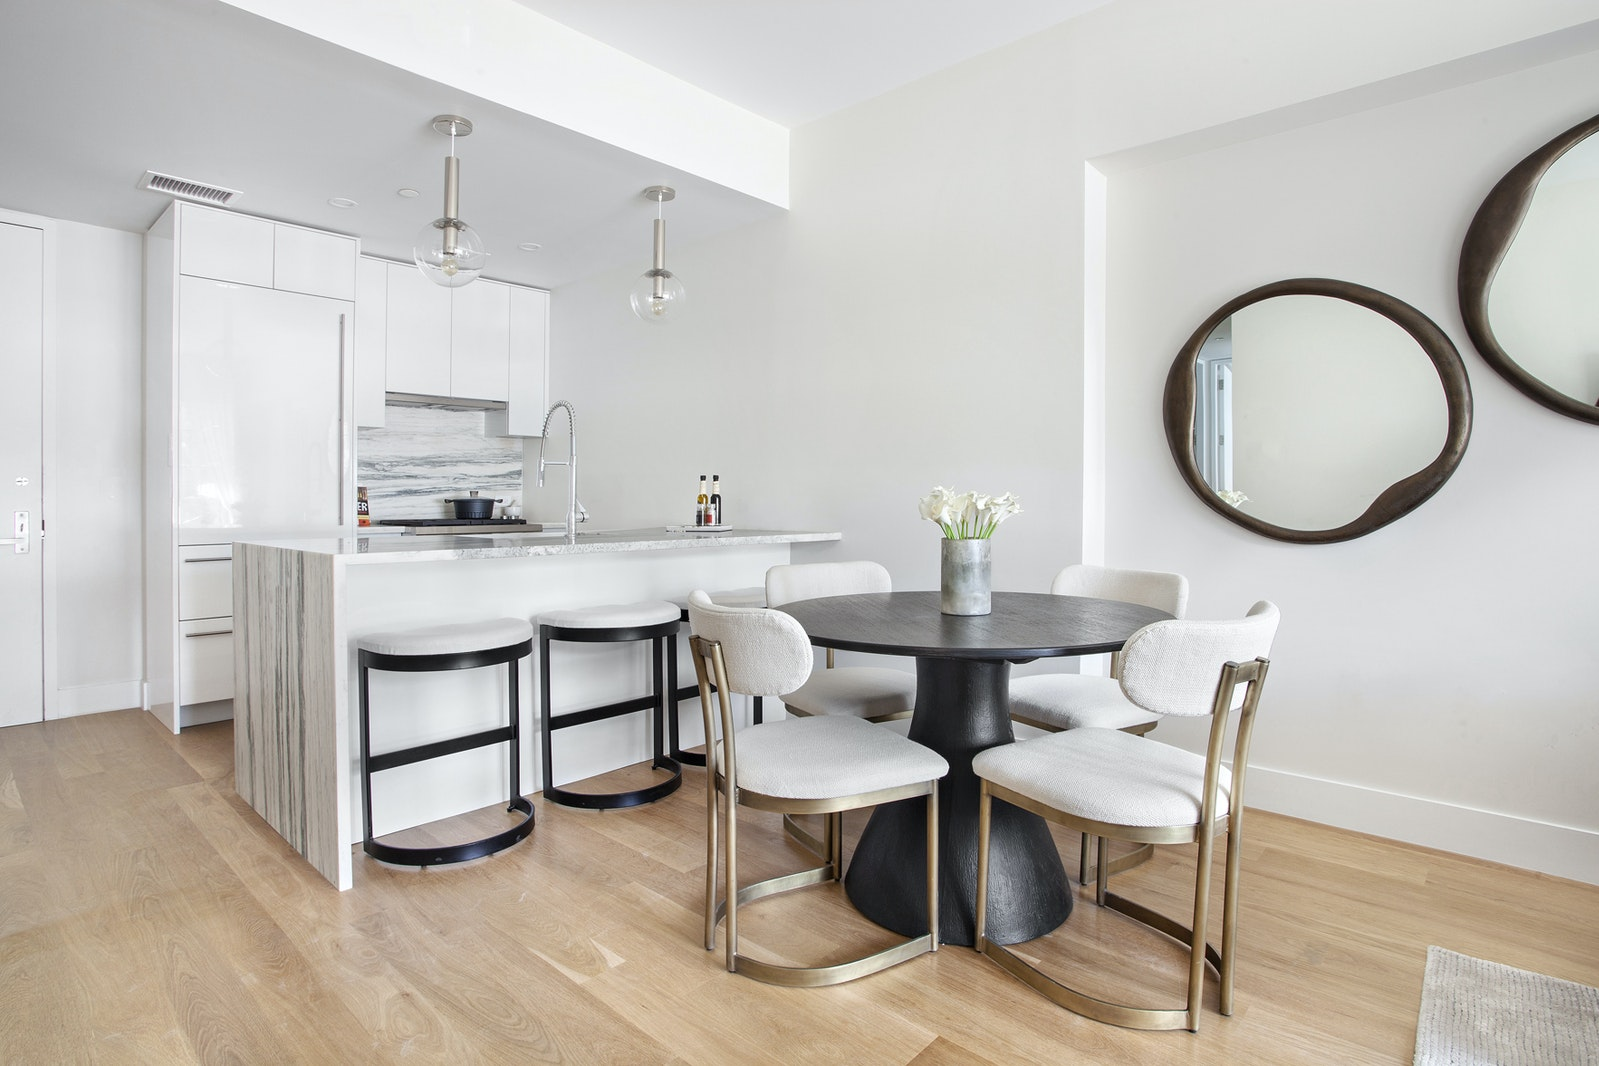 427 East 90th Street 3b, Upper East Side, NYC, 10128, $1,948,000, Property For Sale, Halstead Real Estate, Photo 2